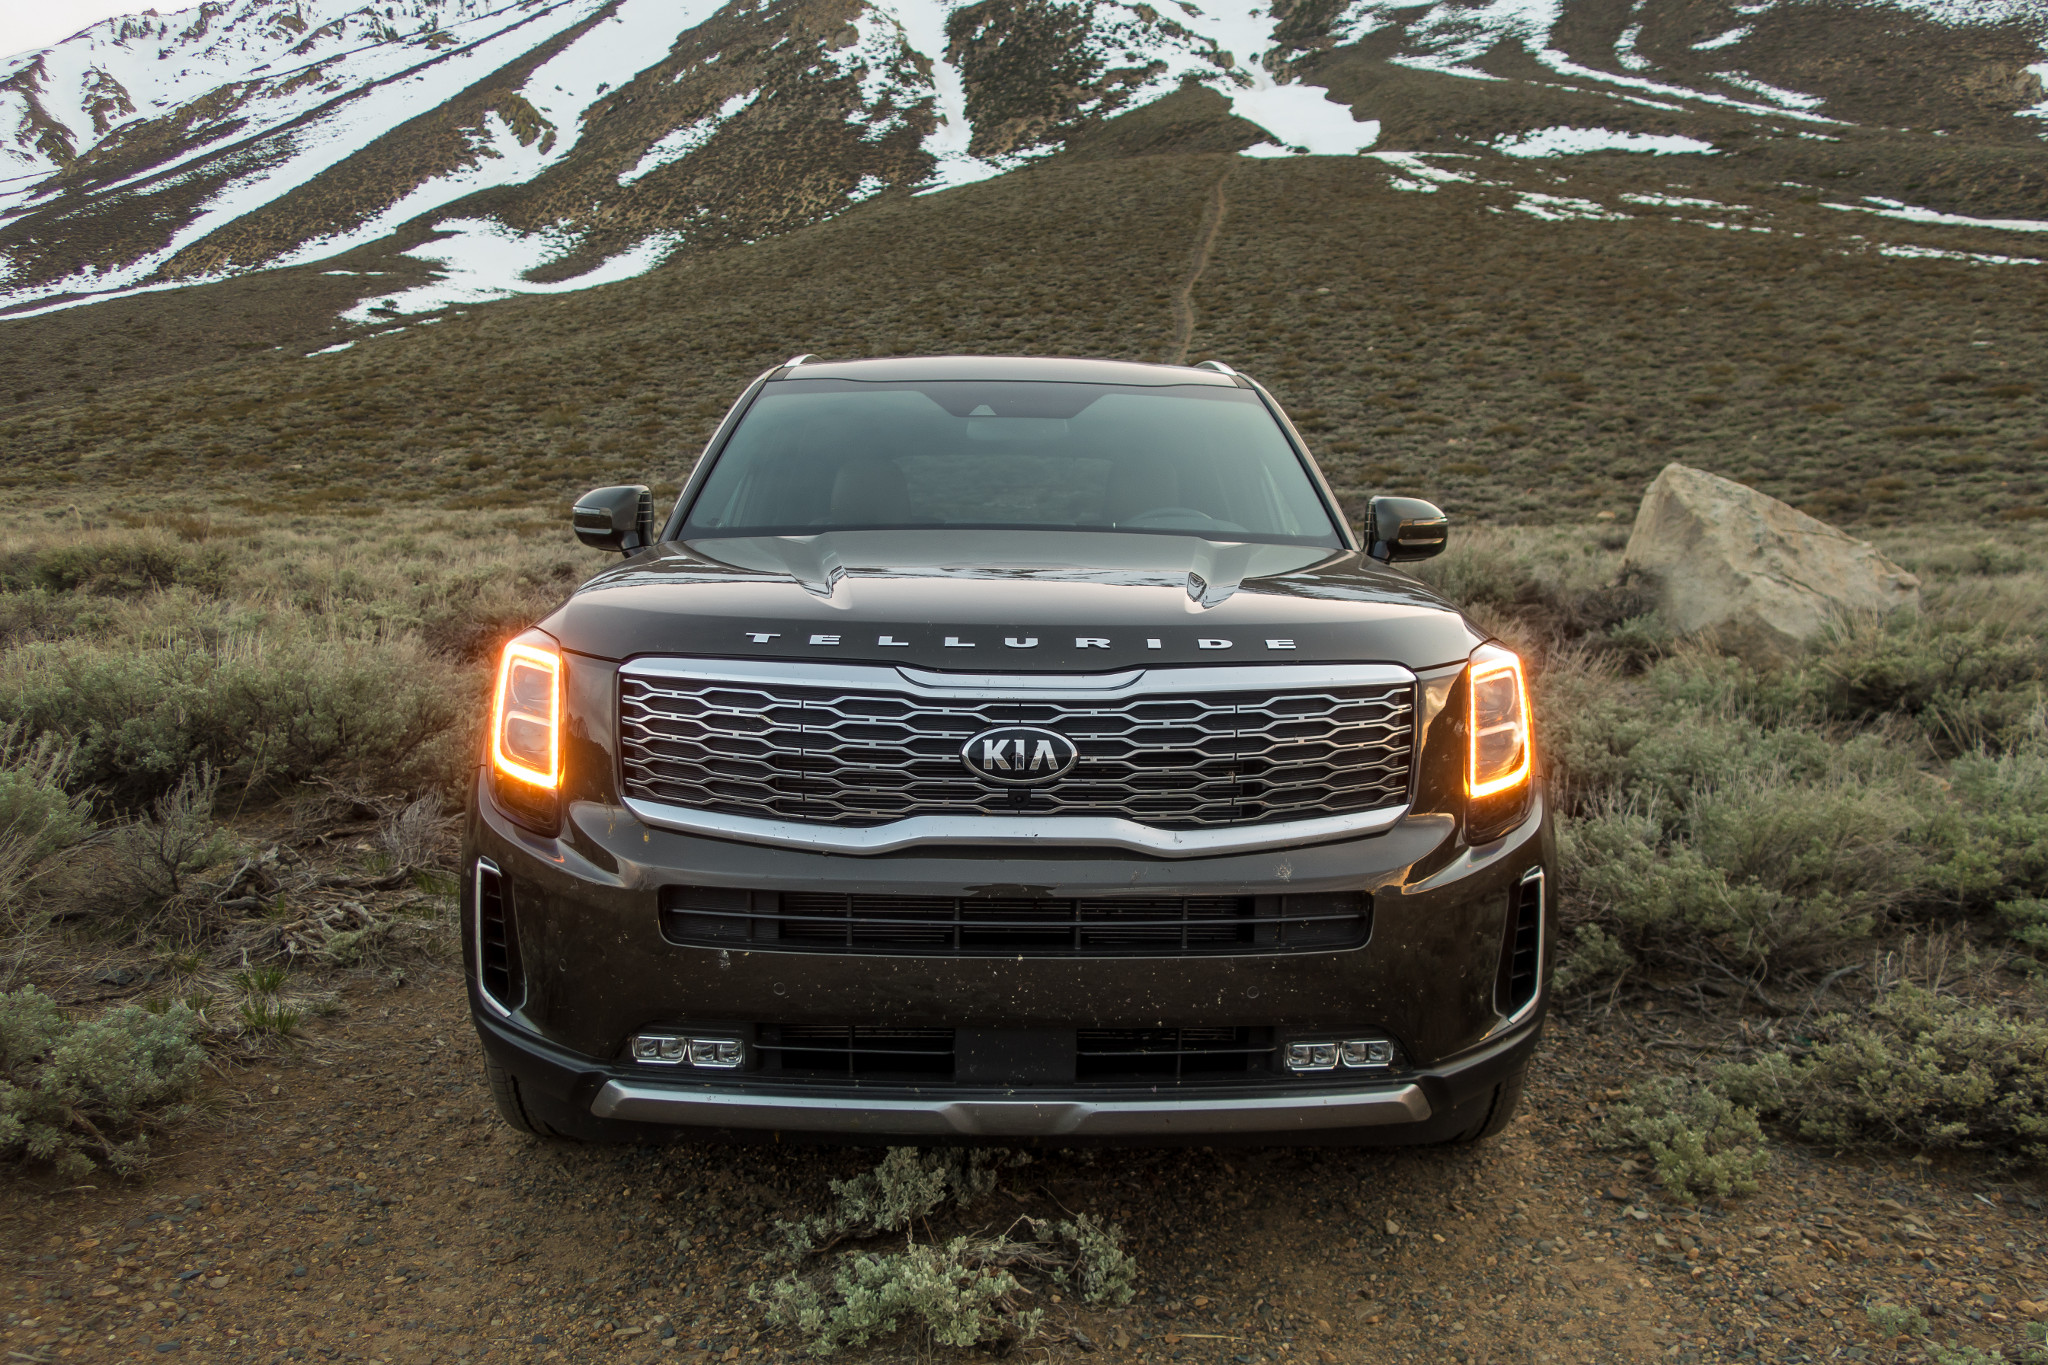 56 A Kia Large Suv 2020 Research New